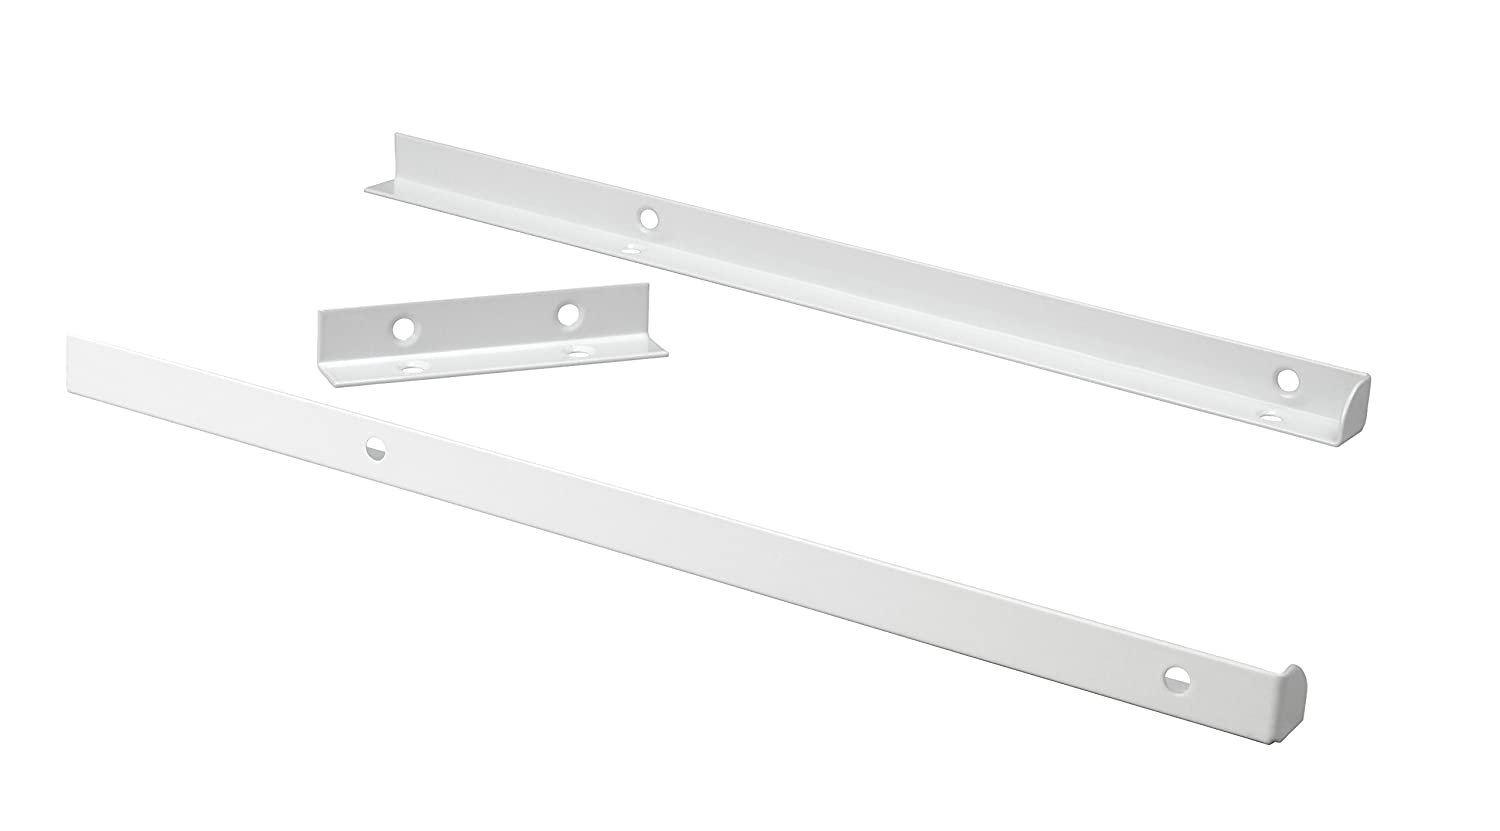 ClosetMaid 8892 SuiteSymphony Top Shelf Support Kit Nickel